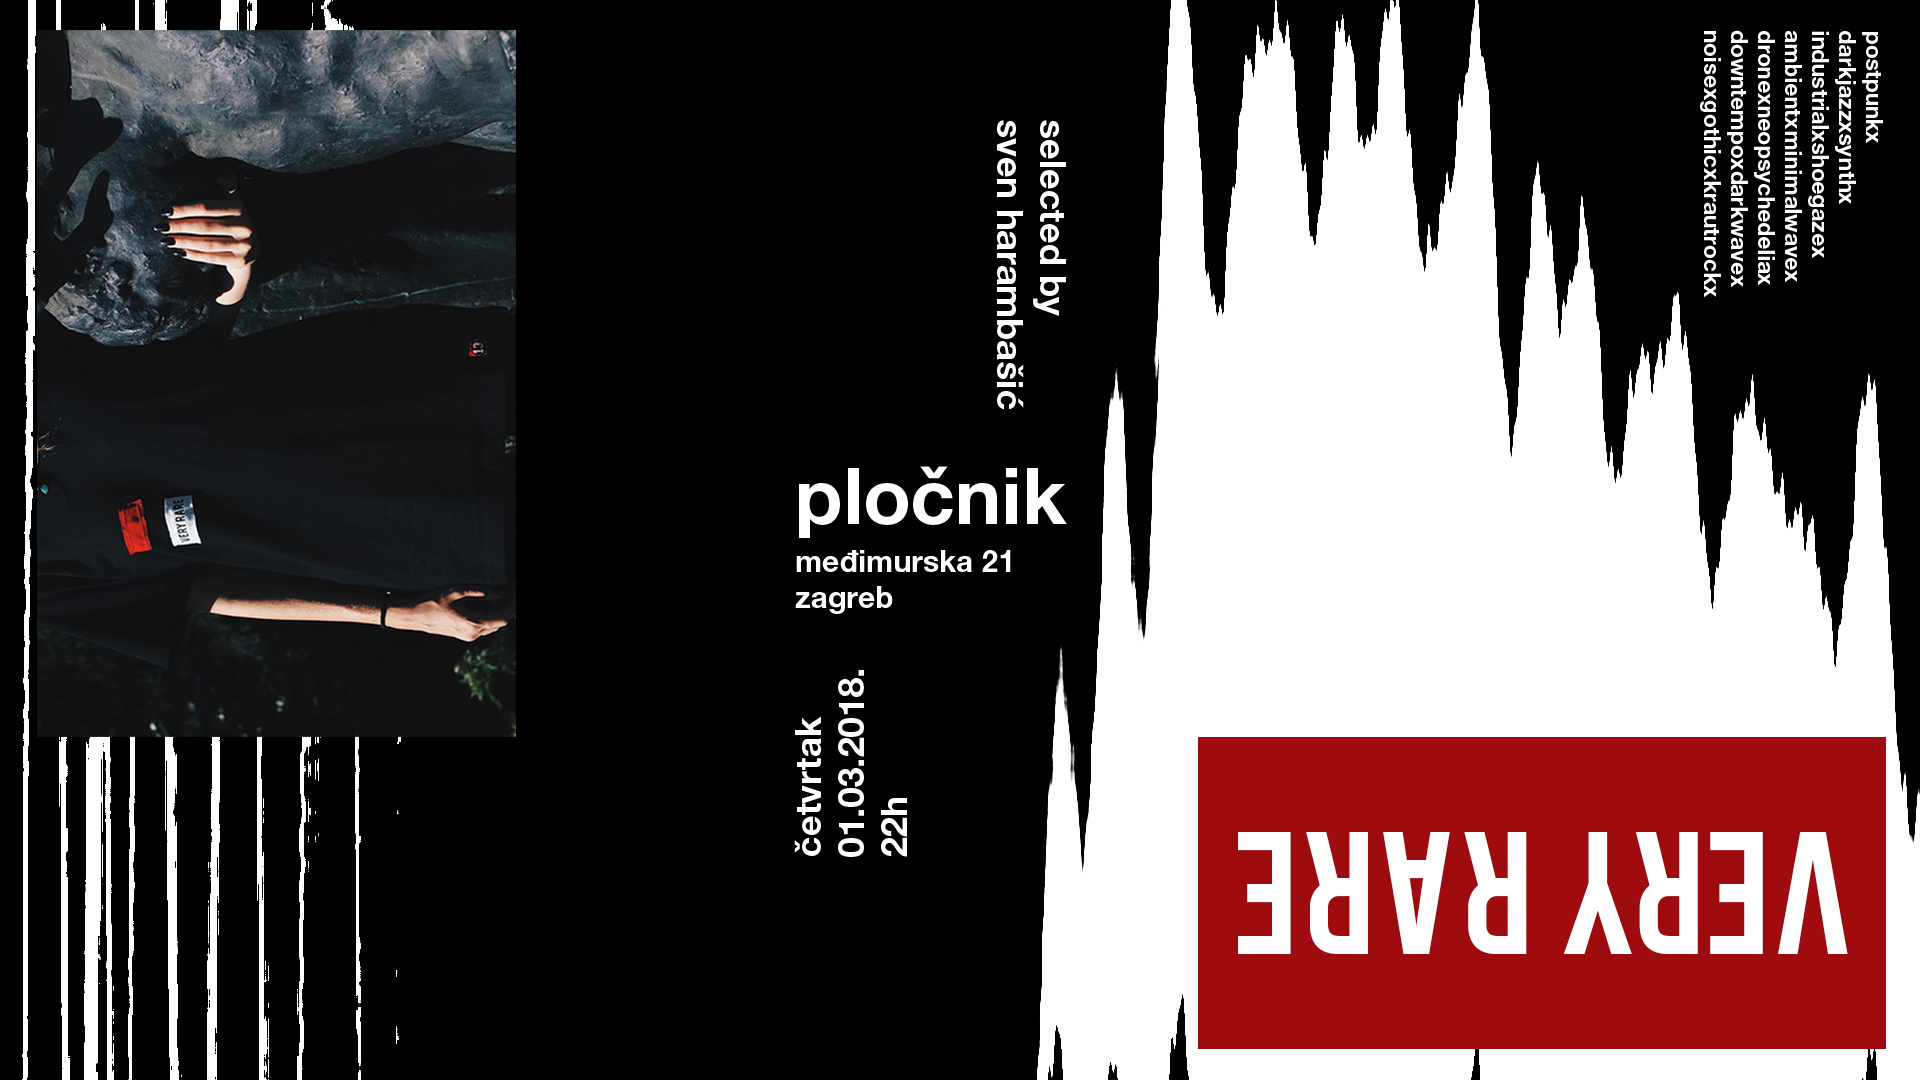 VERY RARE u Pločniku, a DJ night by Sven Harambasic, playing experimental, ambient, post-punk, industrial and darkwave music